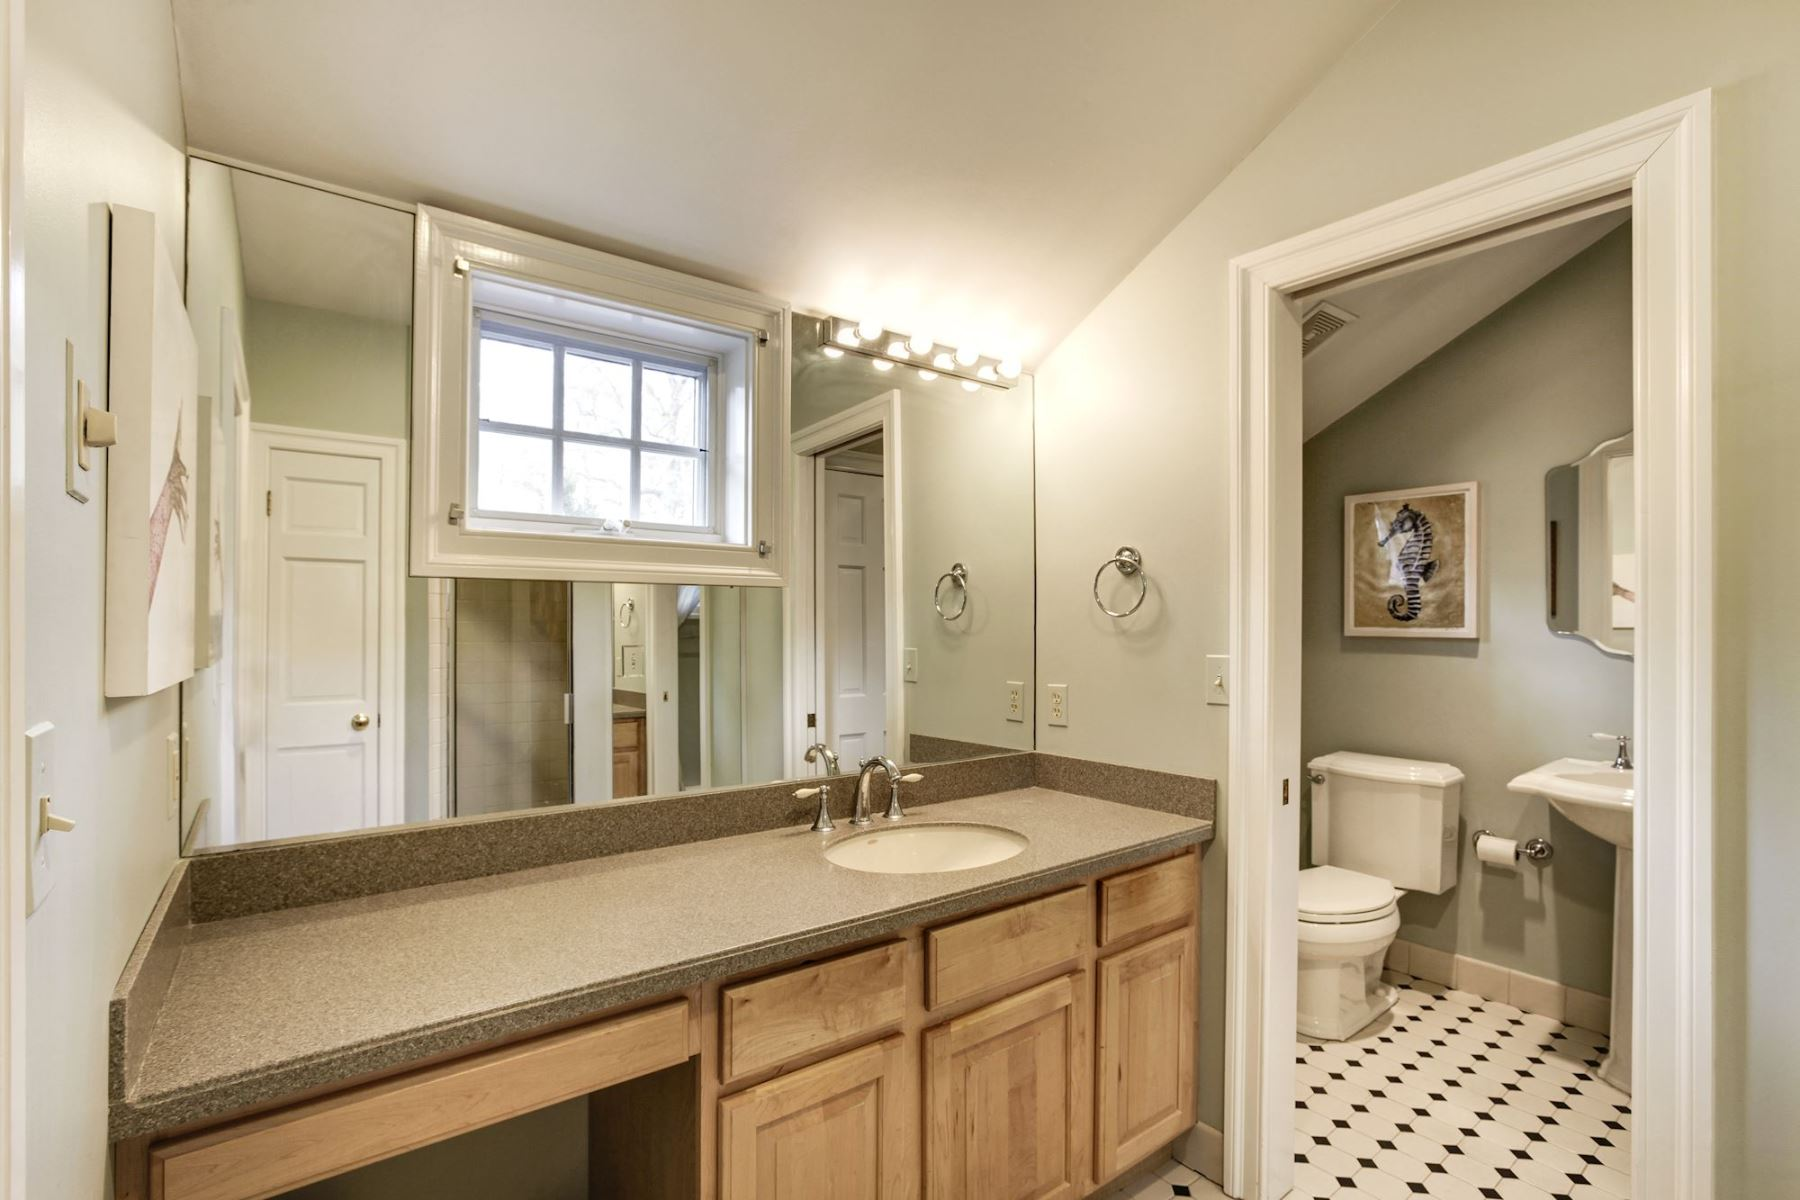 Additional photo for property listing at 635 Broadwater Way, Gibson Island  Gibson Island, Maryland 21056 Estados Unidos